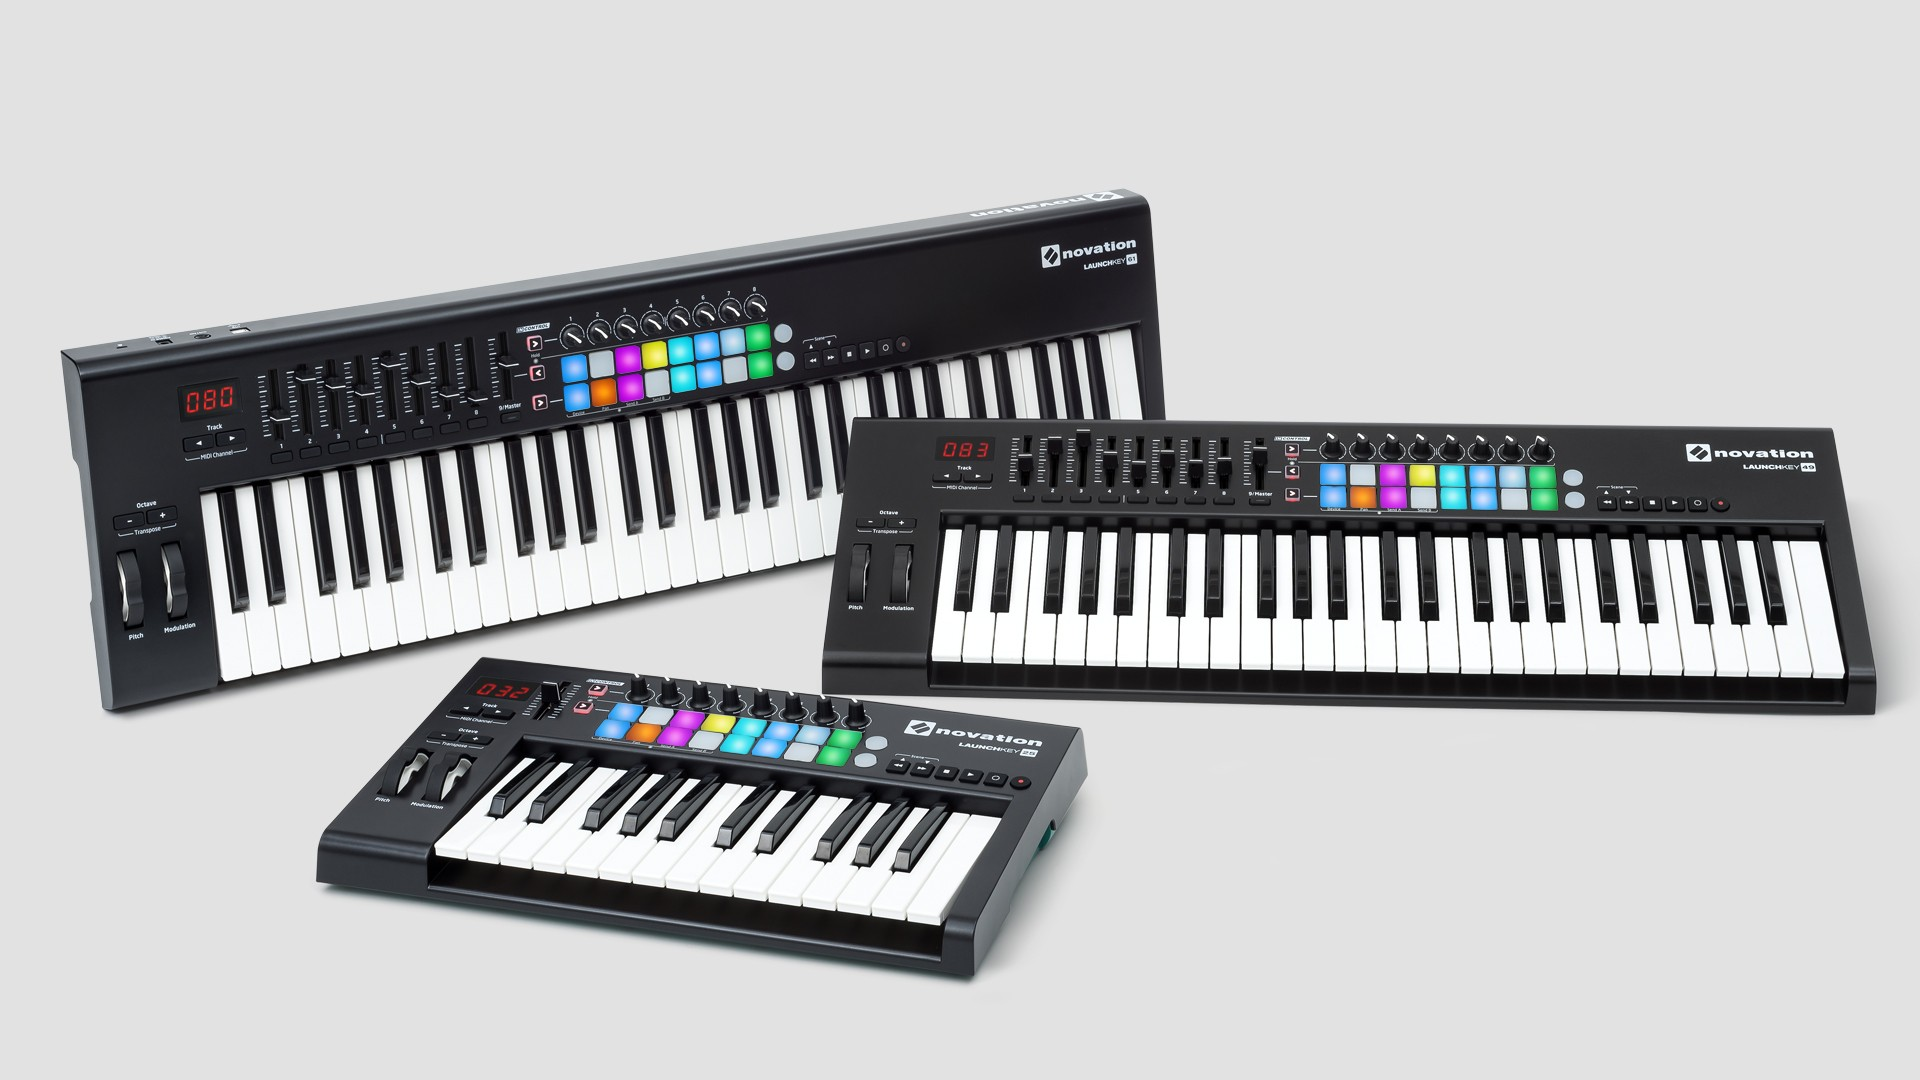 Teclados controladores MIDI Novation Launchkey